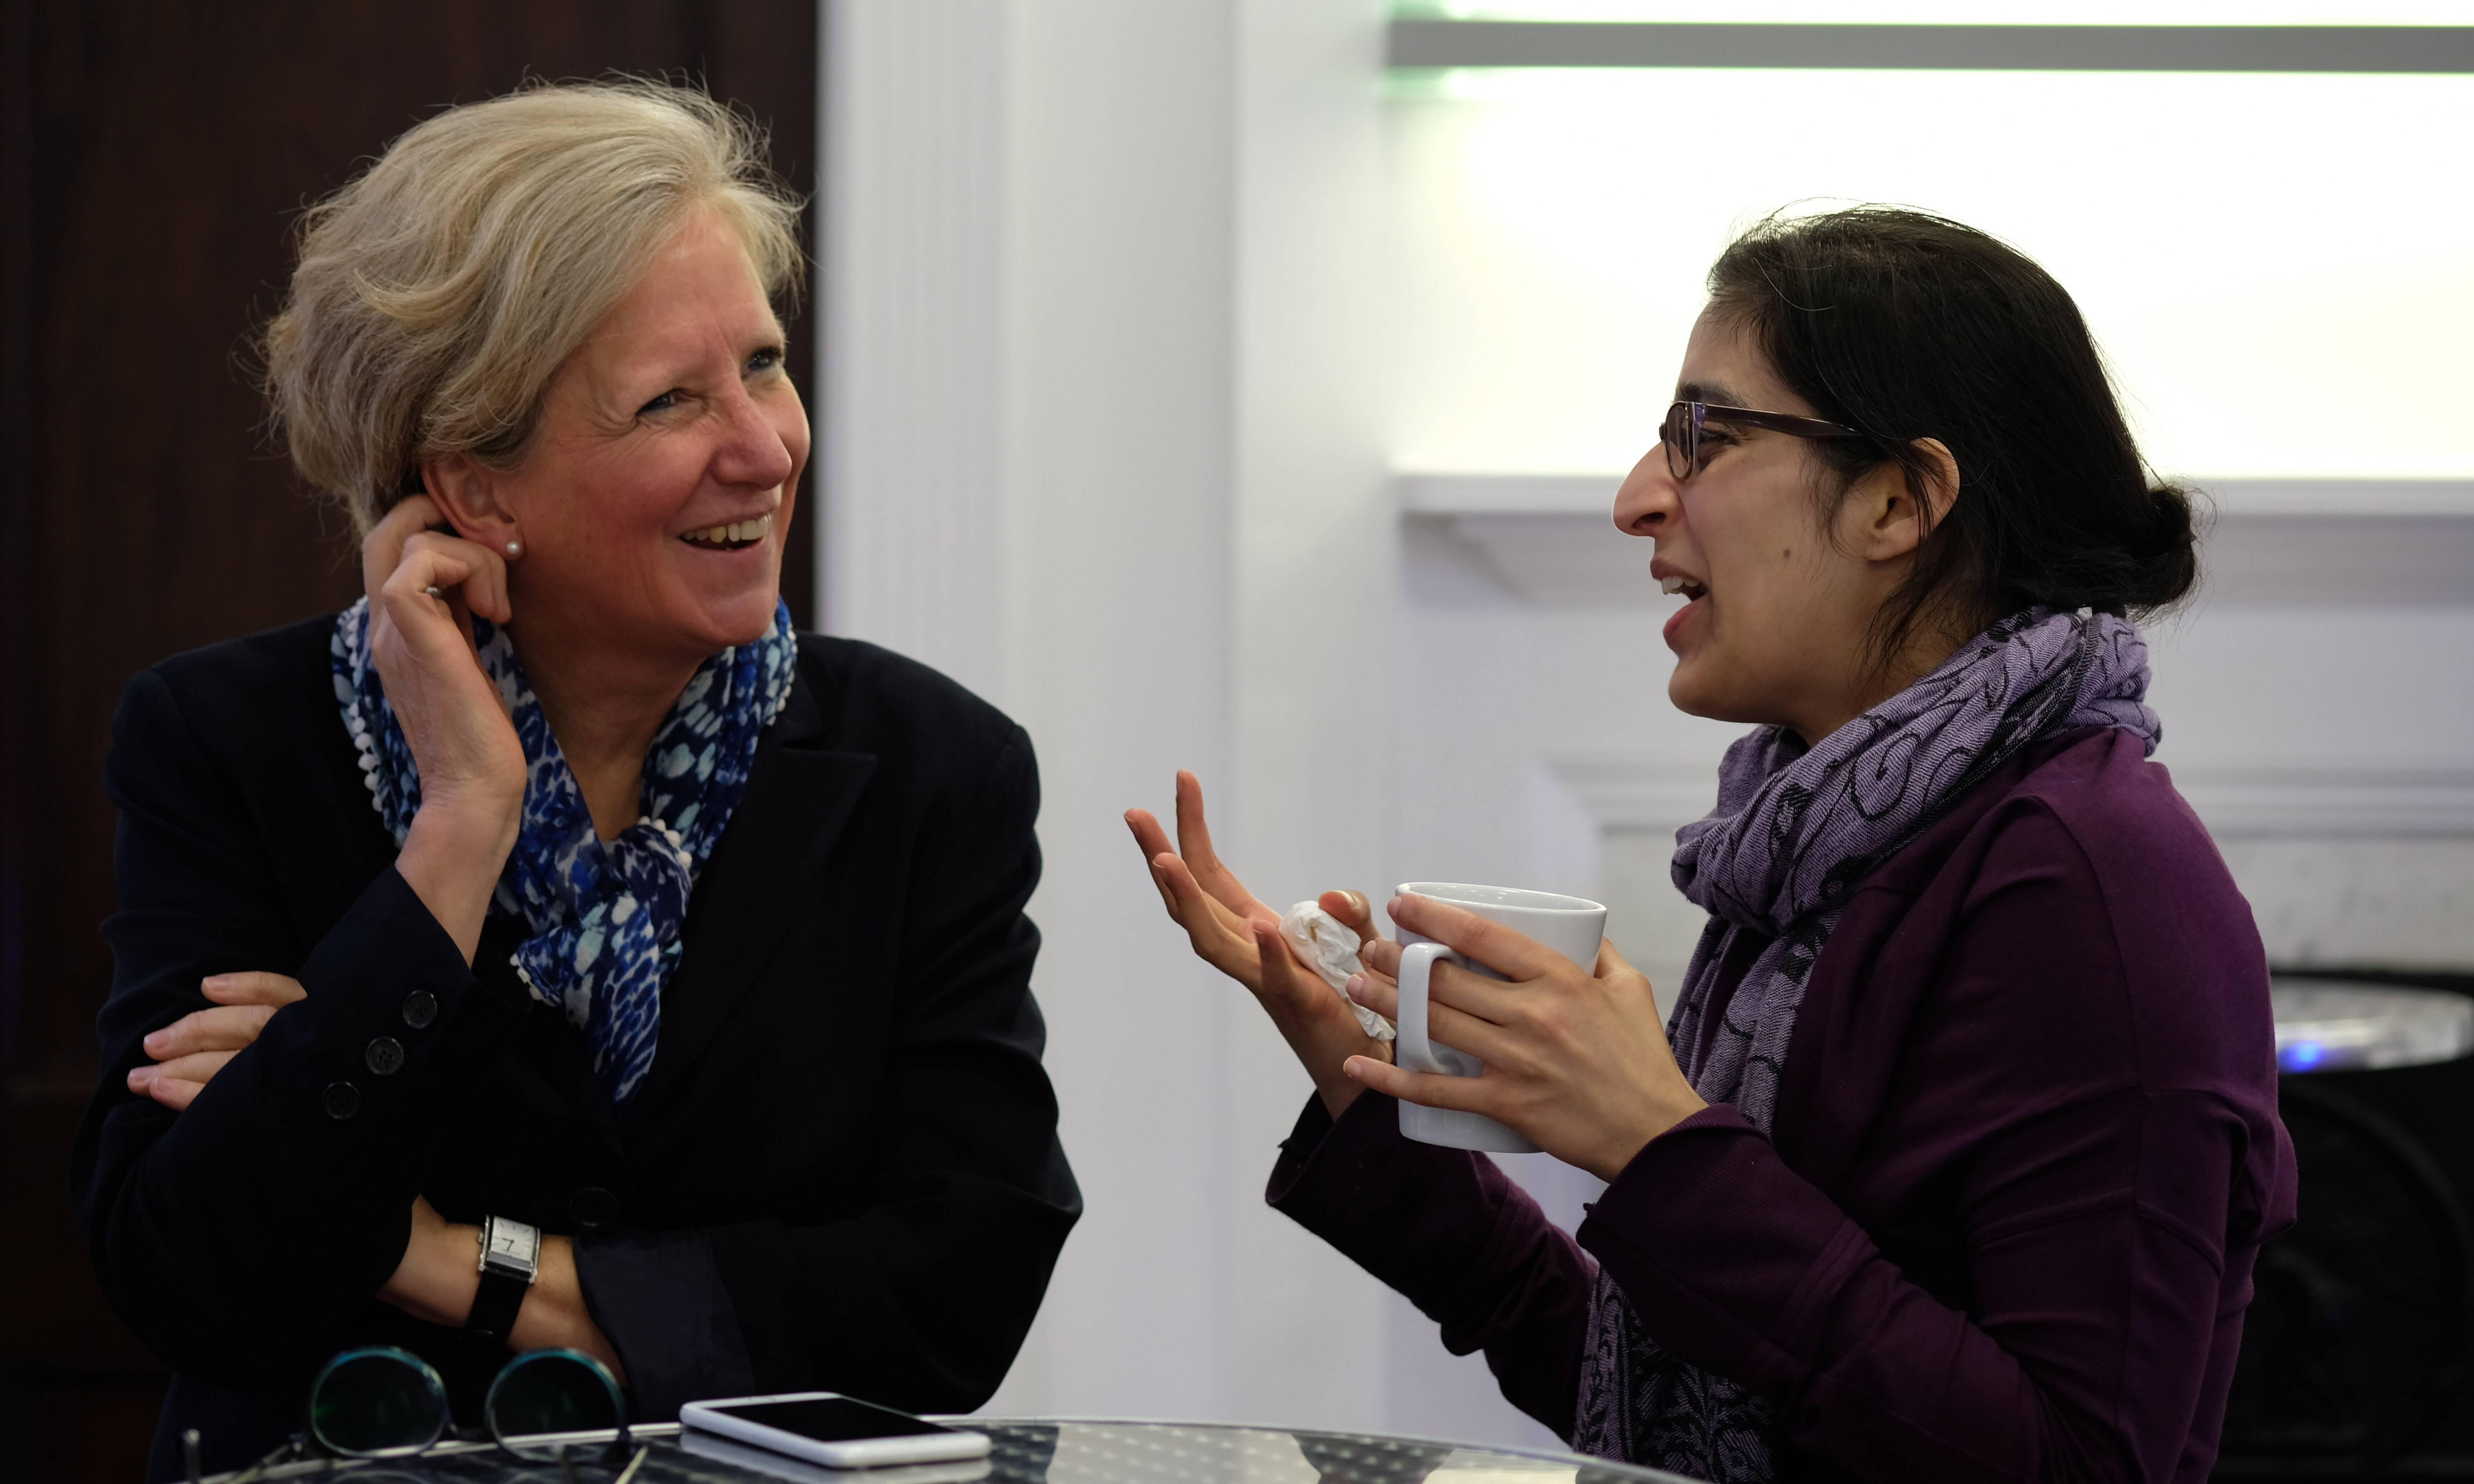 Professor Sarah Coupland (University of Liverpool, ARVO Vice President) sharing a joke over coffee during the networking session at the Women in Vision UK Inaugural meeting